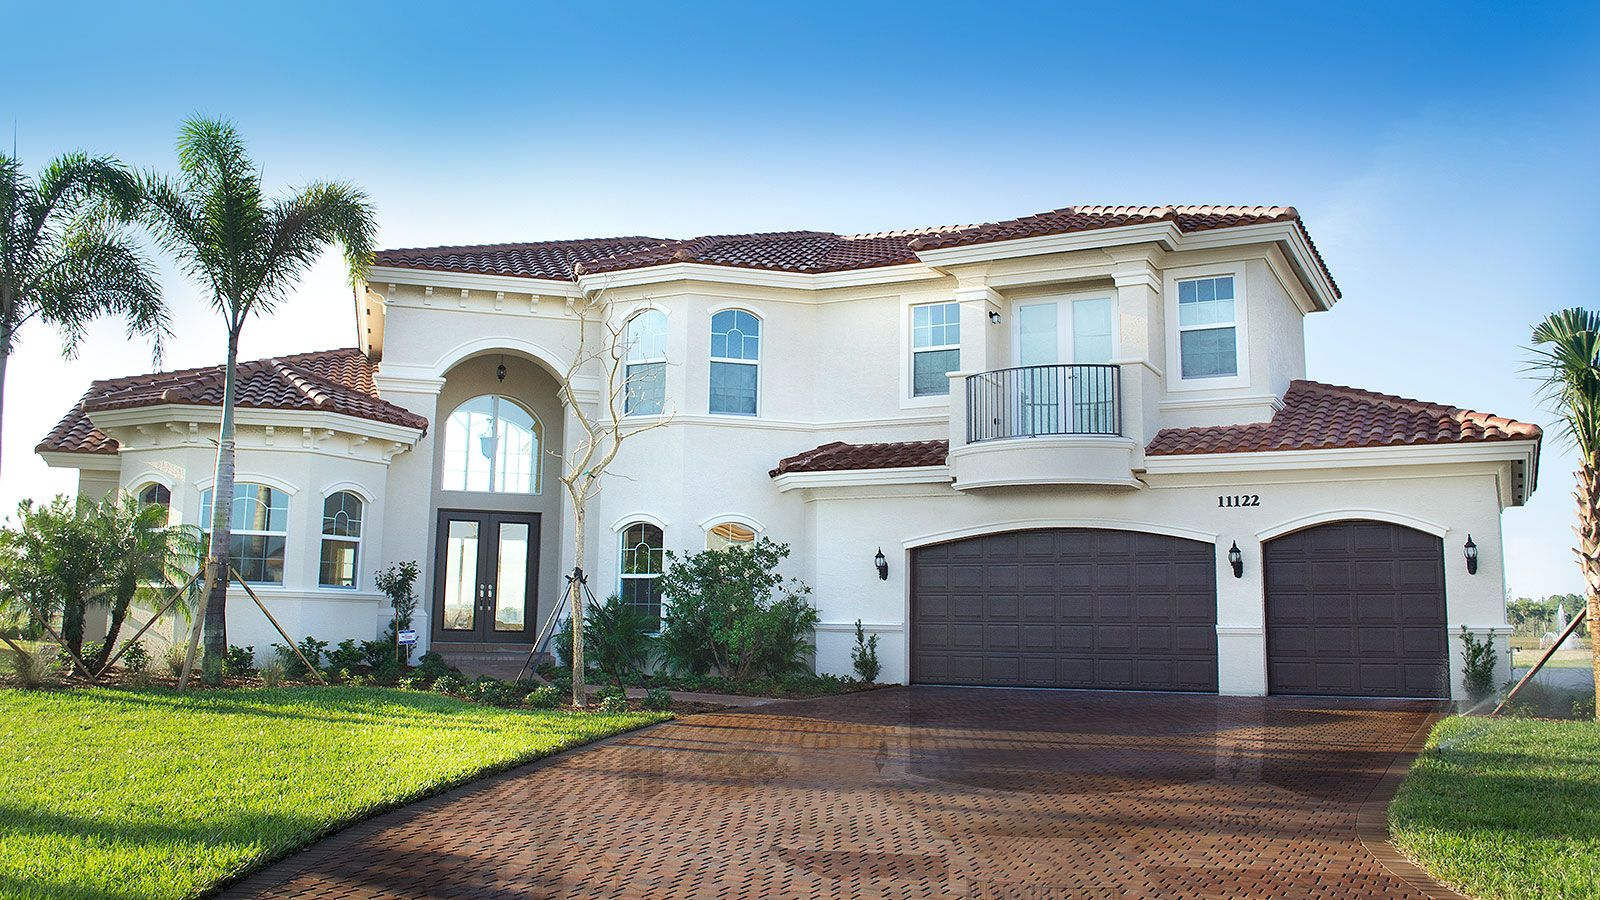 West palm beach new homes new construction home for New homes source